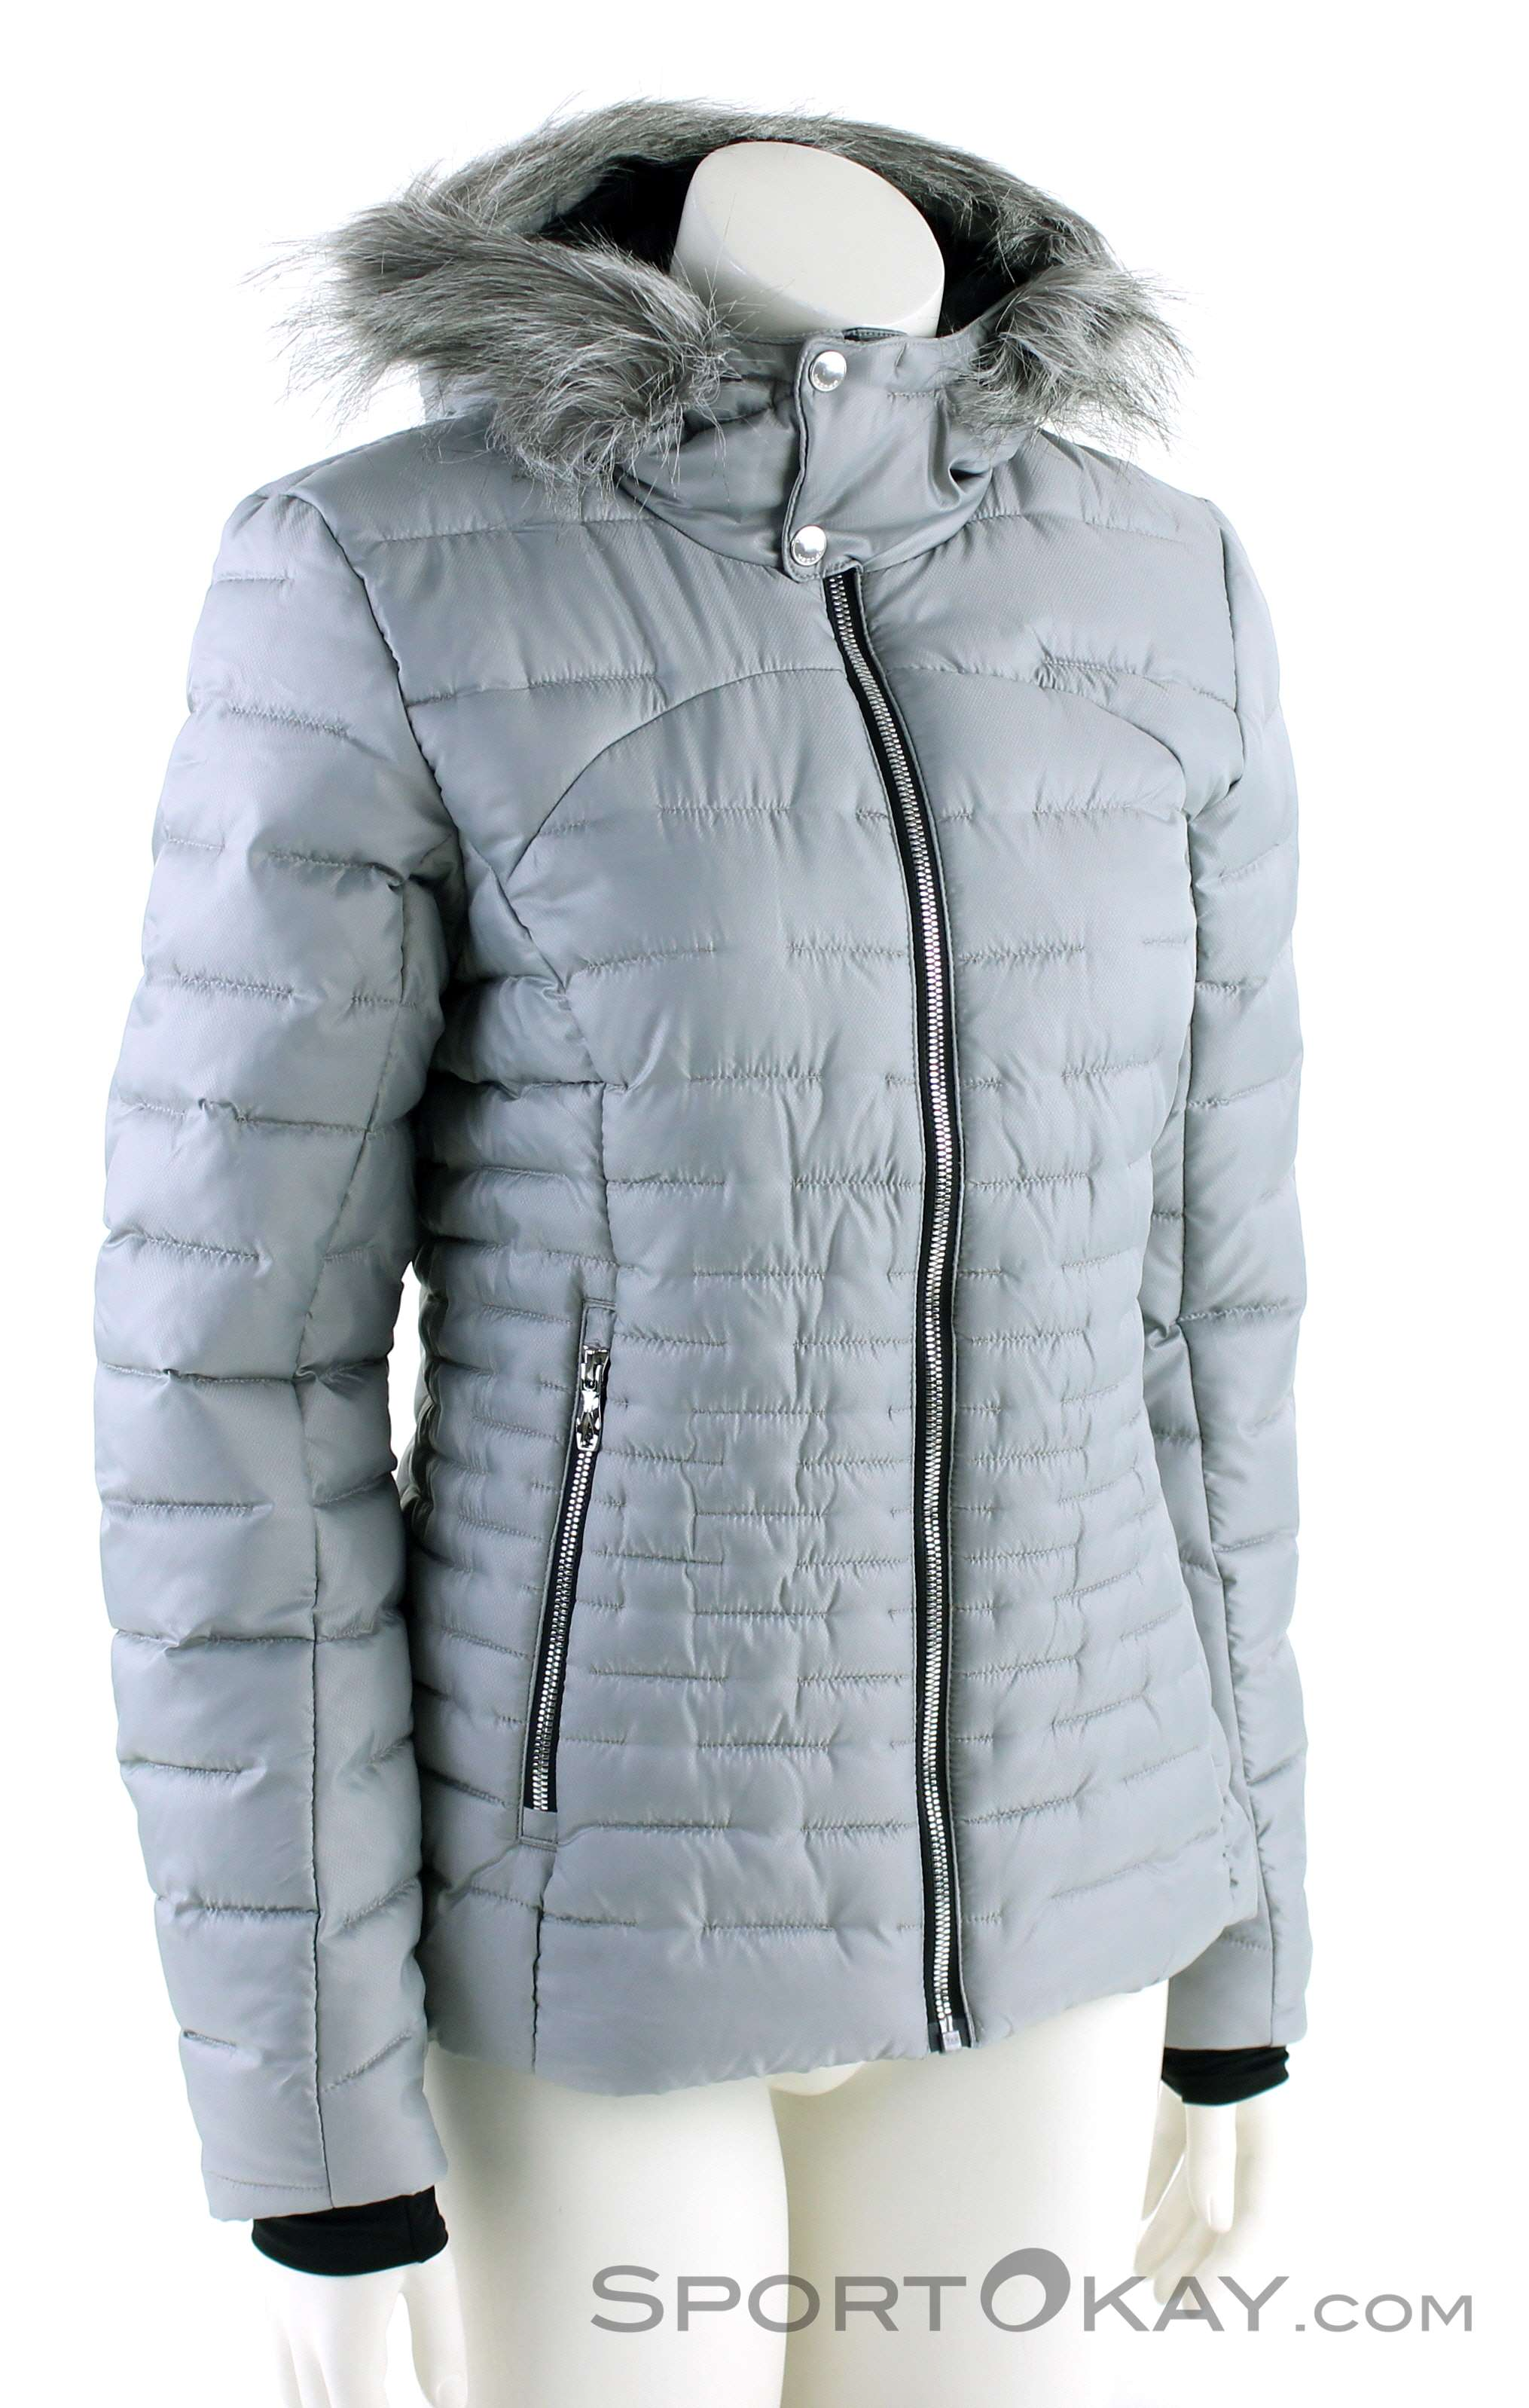 2384908707c5 Spyder Edyn Hoody Insulated Jacket Womens Leisure Jacket, Spyder, White, ,  Female,